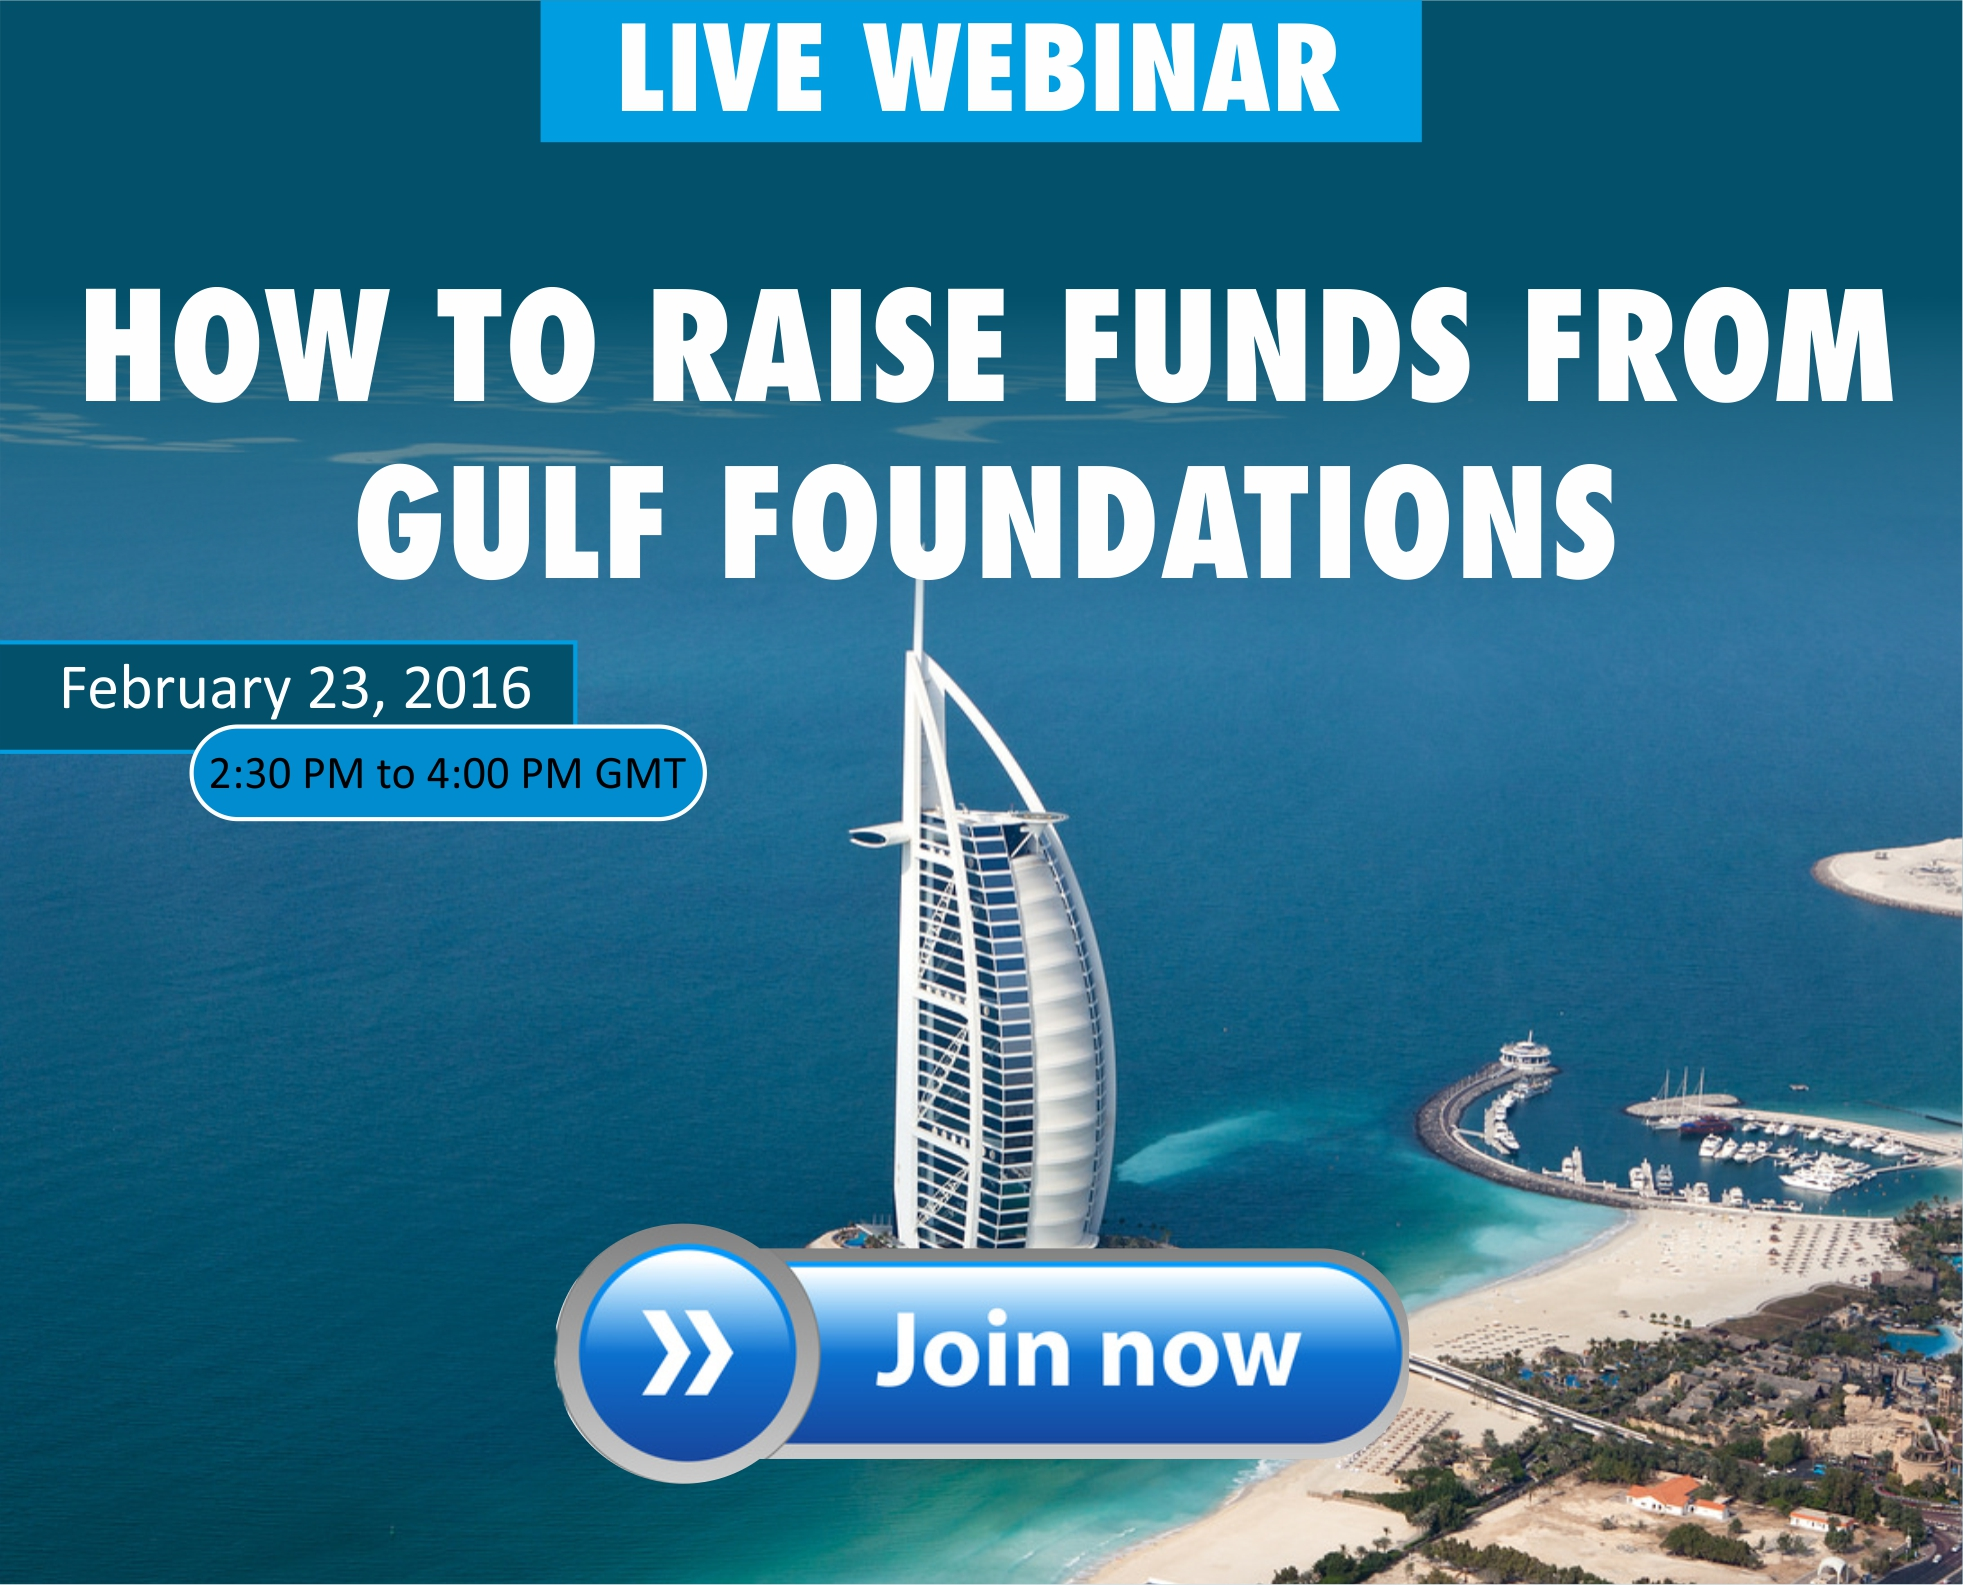 How to Raise Funds from Gulf Foundations